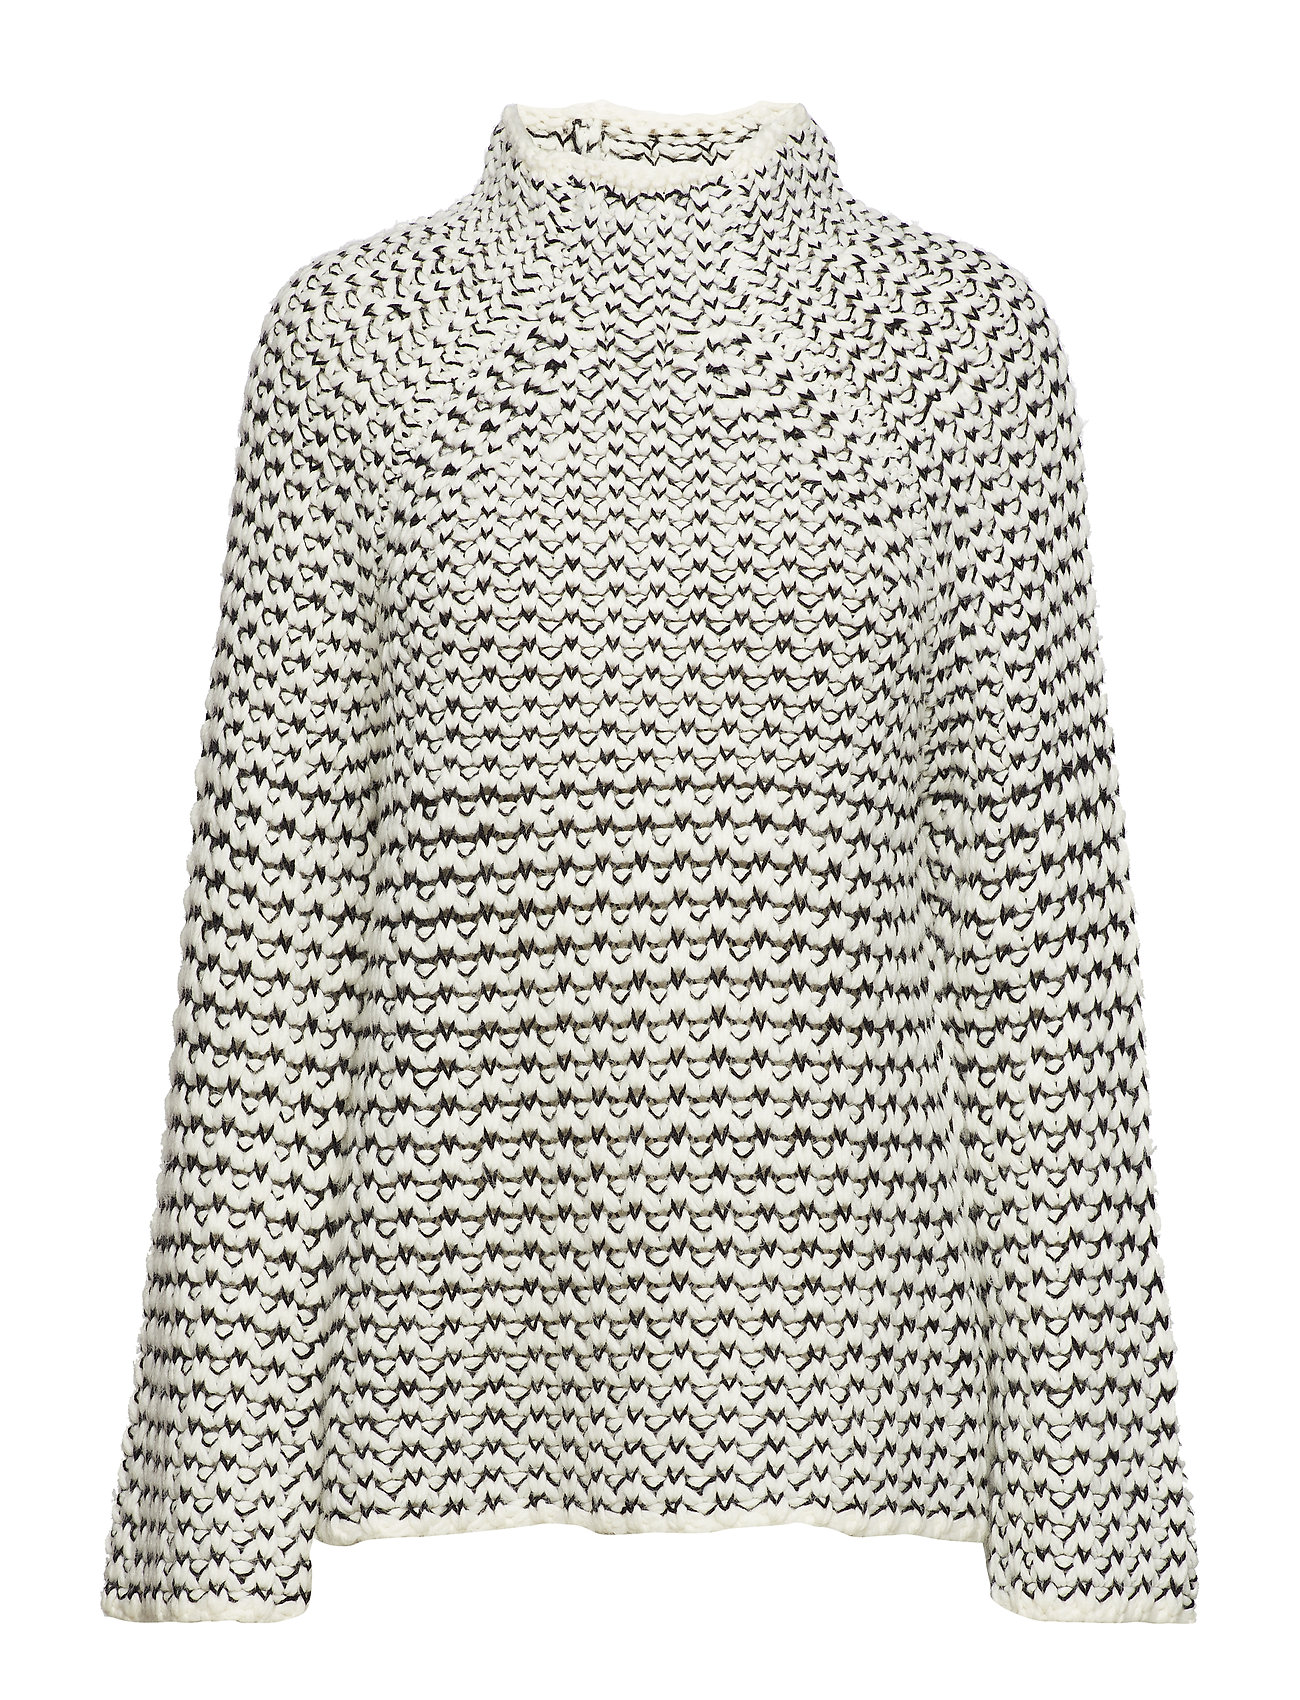 French Connection ZOE KNITS HIGH NCK TUNIC JMPR - WINTER WHITE/BLACK